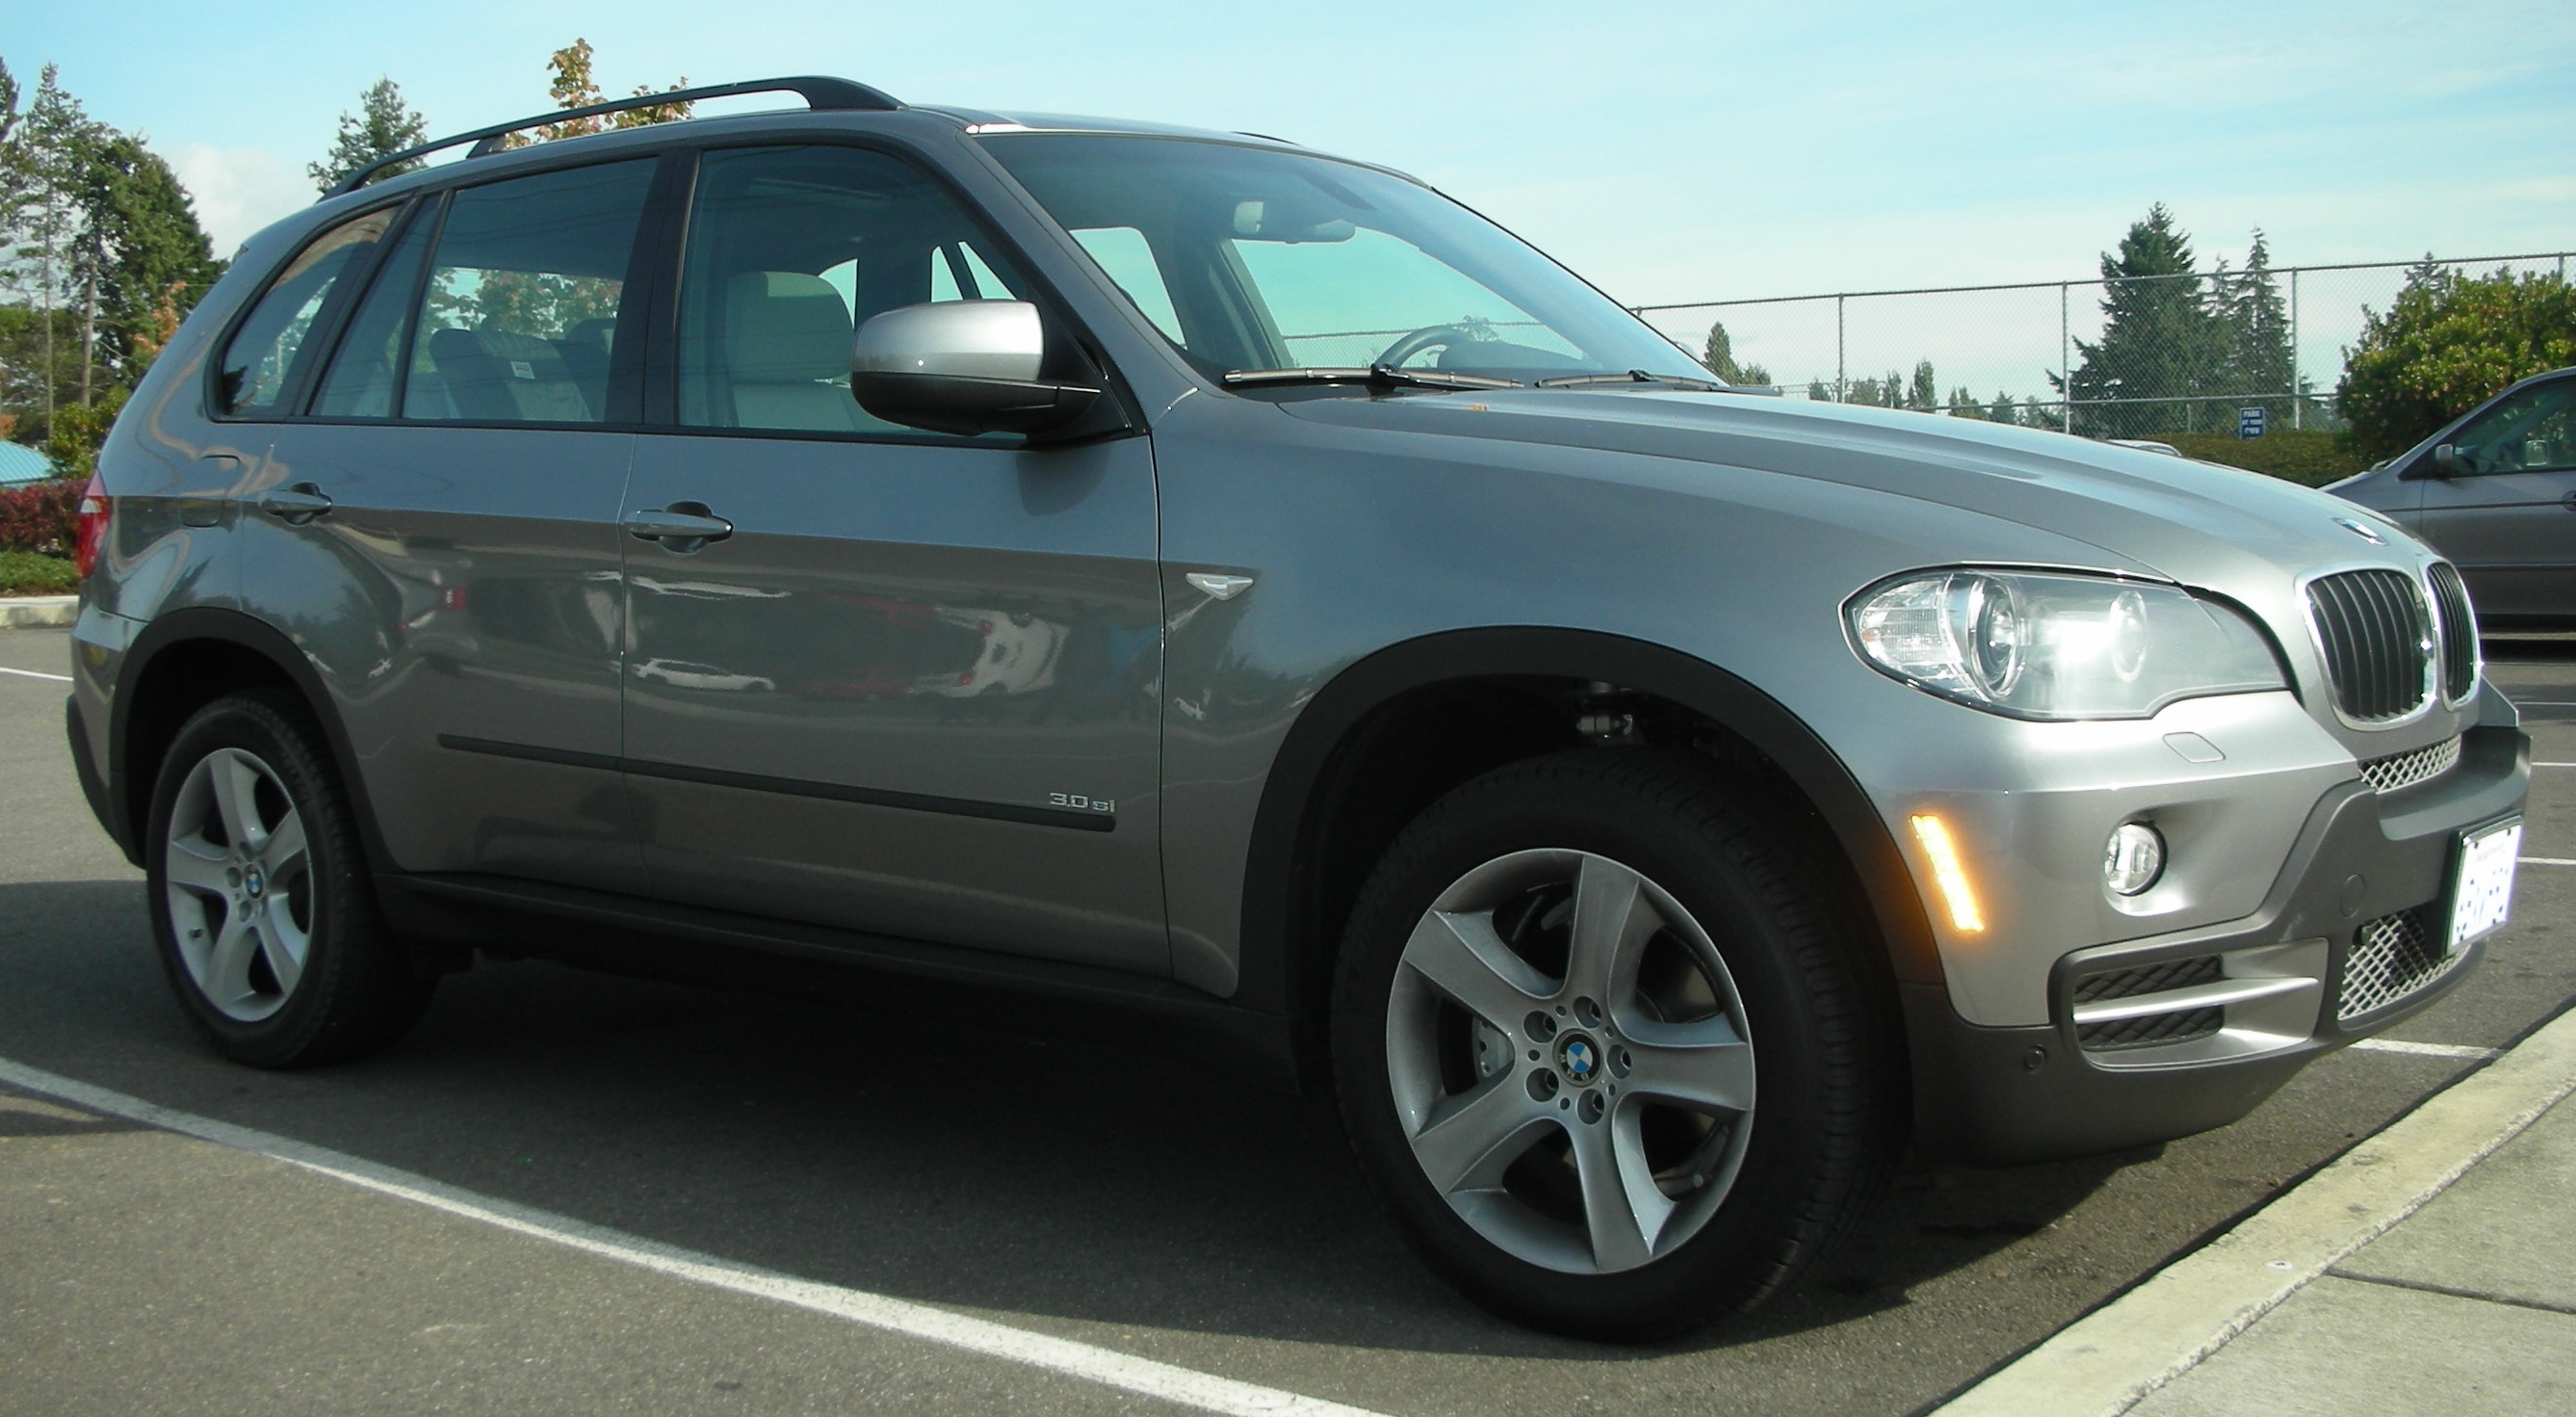 BMW X5 3.0 brown